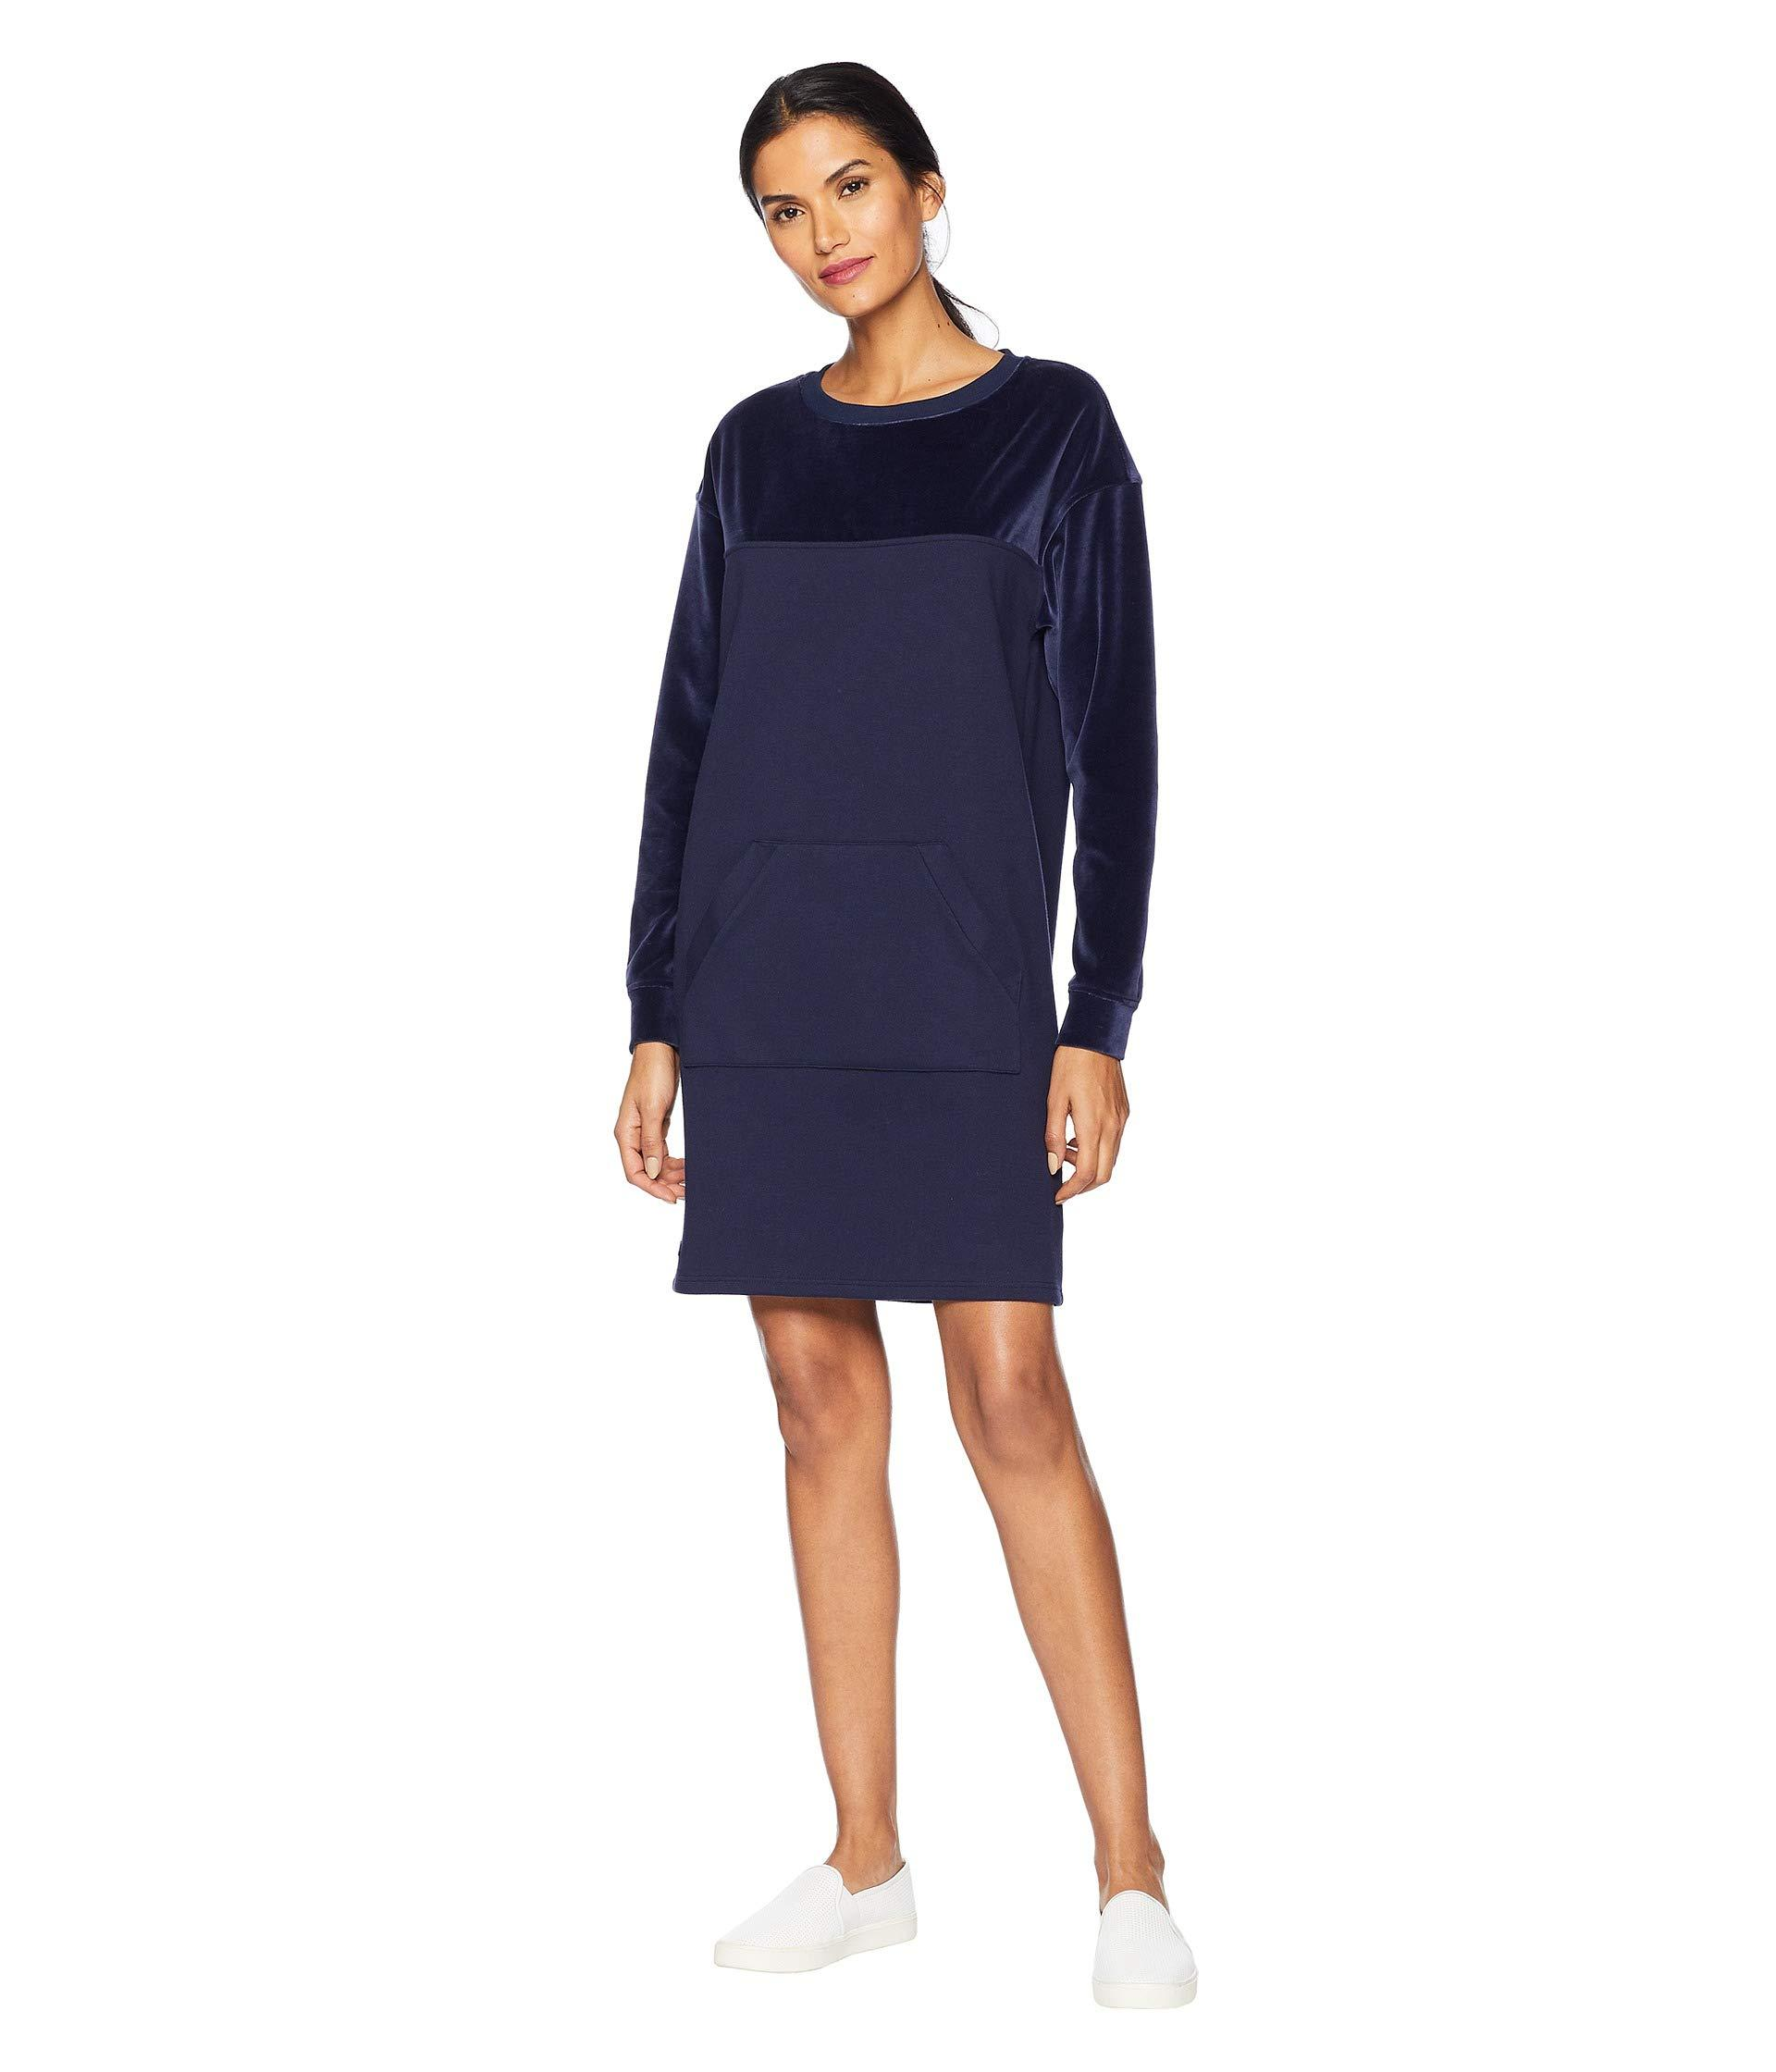 64437aaccb0 Lacoste Long Sleeve Velvet Sweater Dress in Blue - Save 49% - Lyst